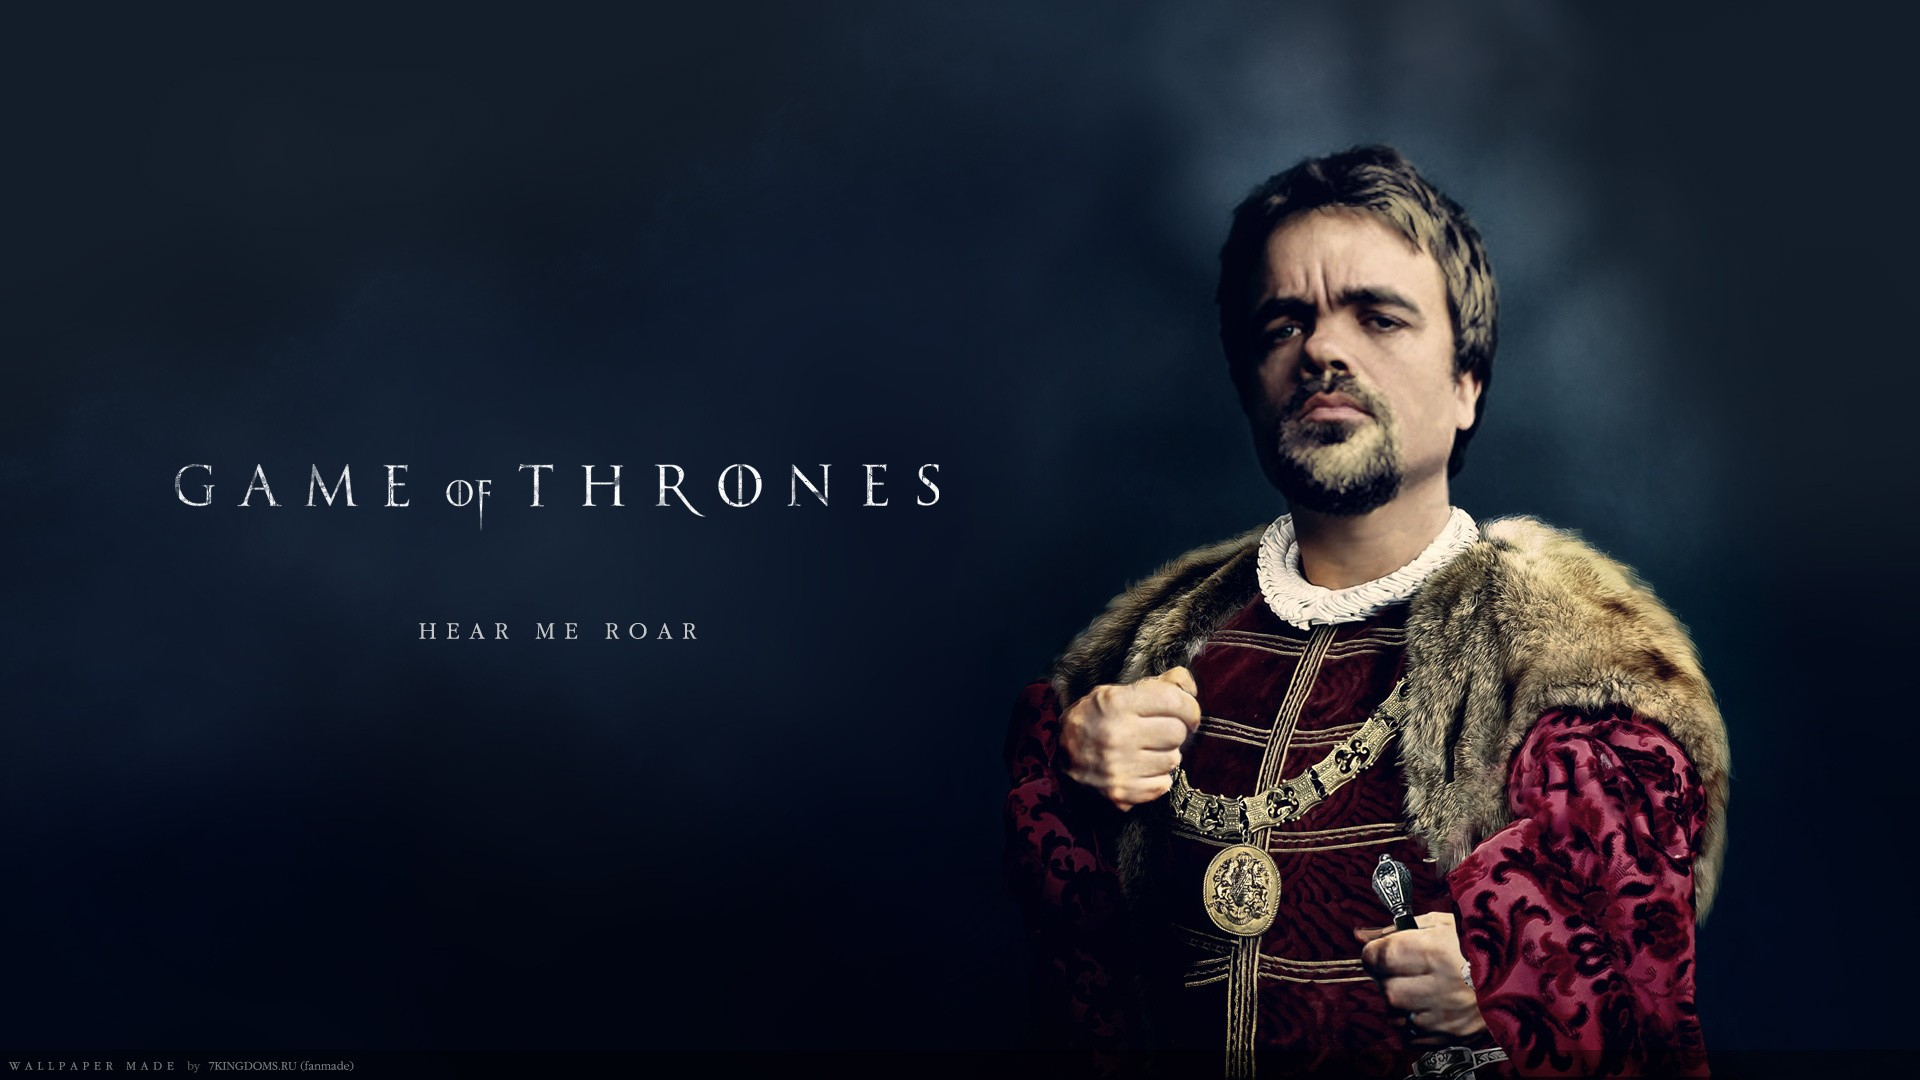 Game Of Thrones HD Wallpapers [25-36] • PoPoPics.com